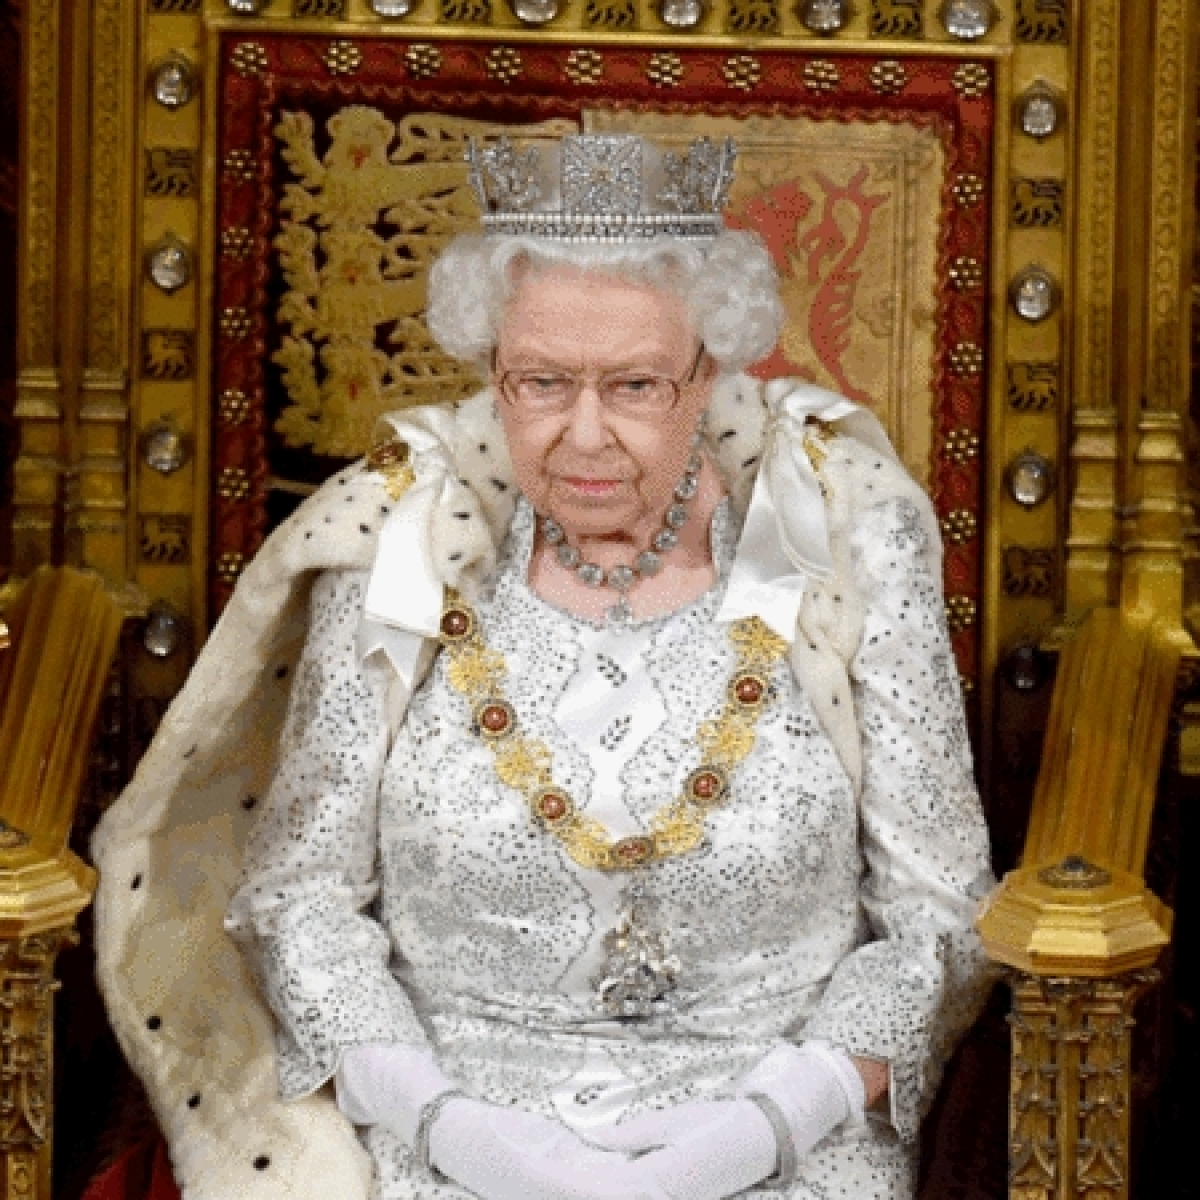 UK's exit from EU on October 31 a priority for my government: Queen